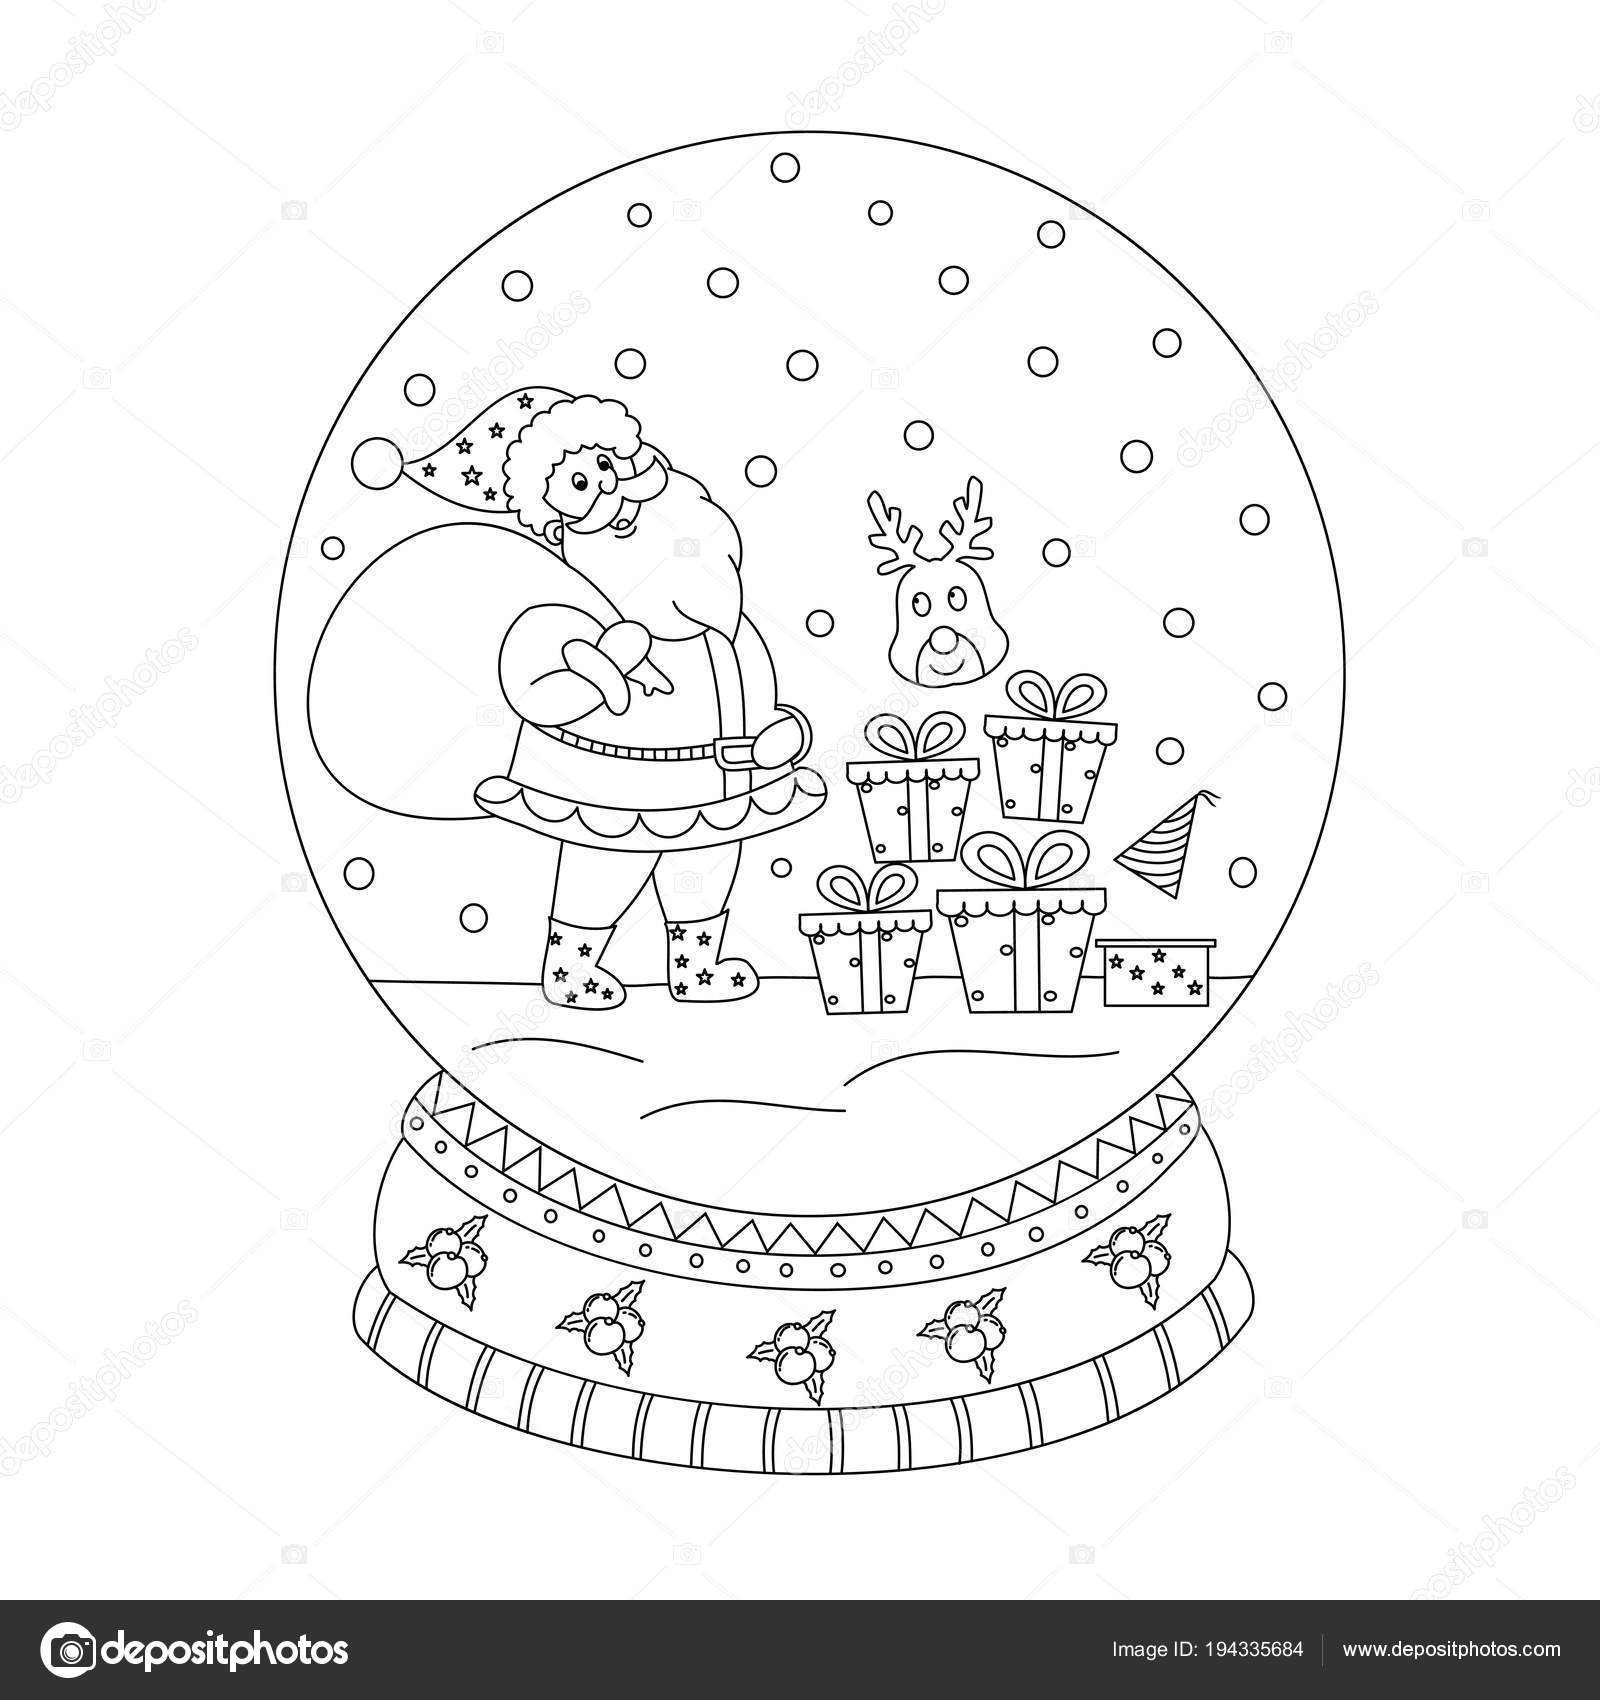 Printable christmas snow globe coloring pages for kids | 1700x1600